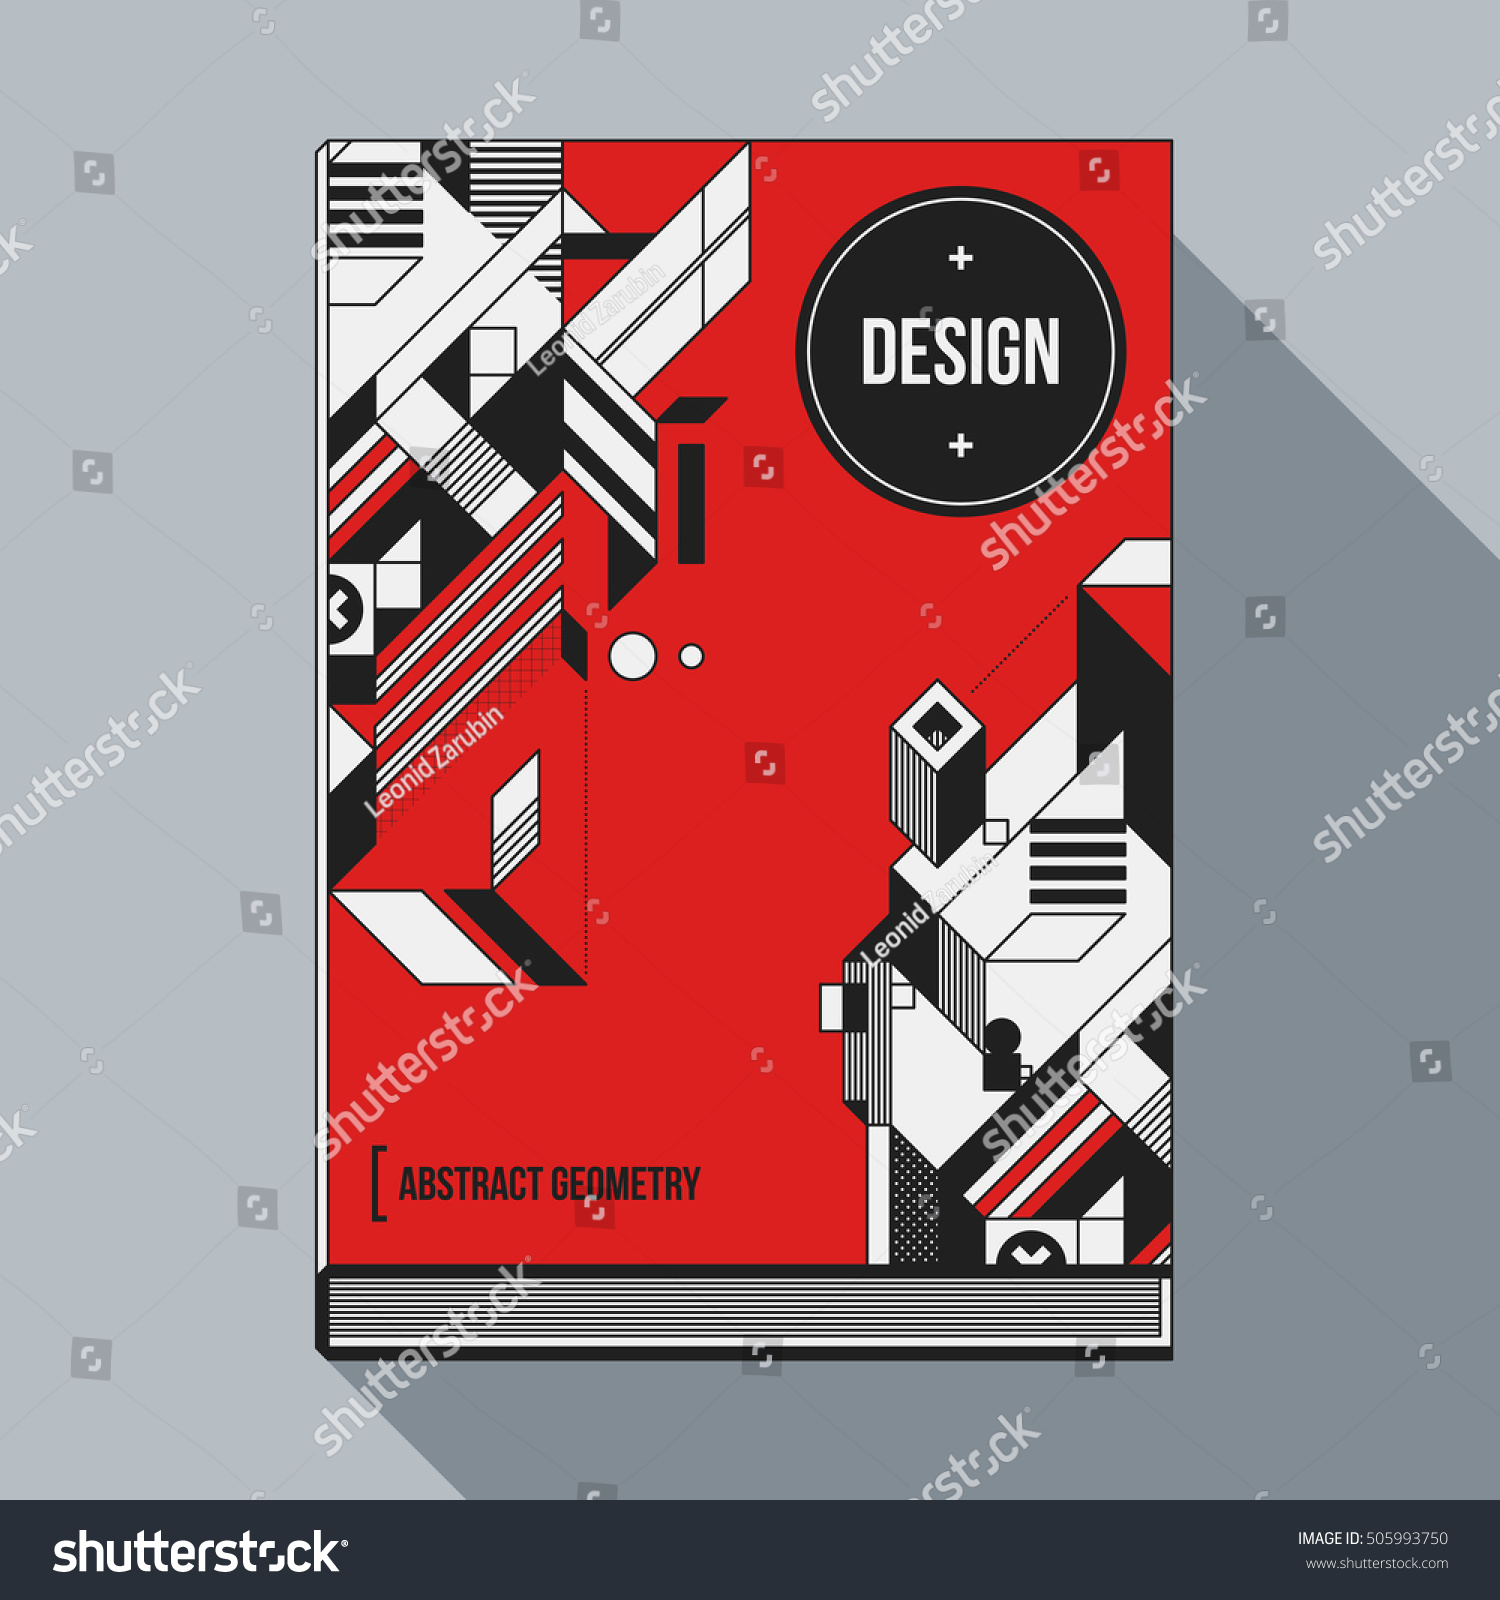 Book Cover Design Elements : Book cover design template abstract geometric stock vector